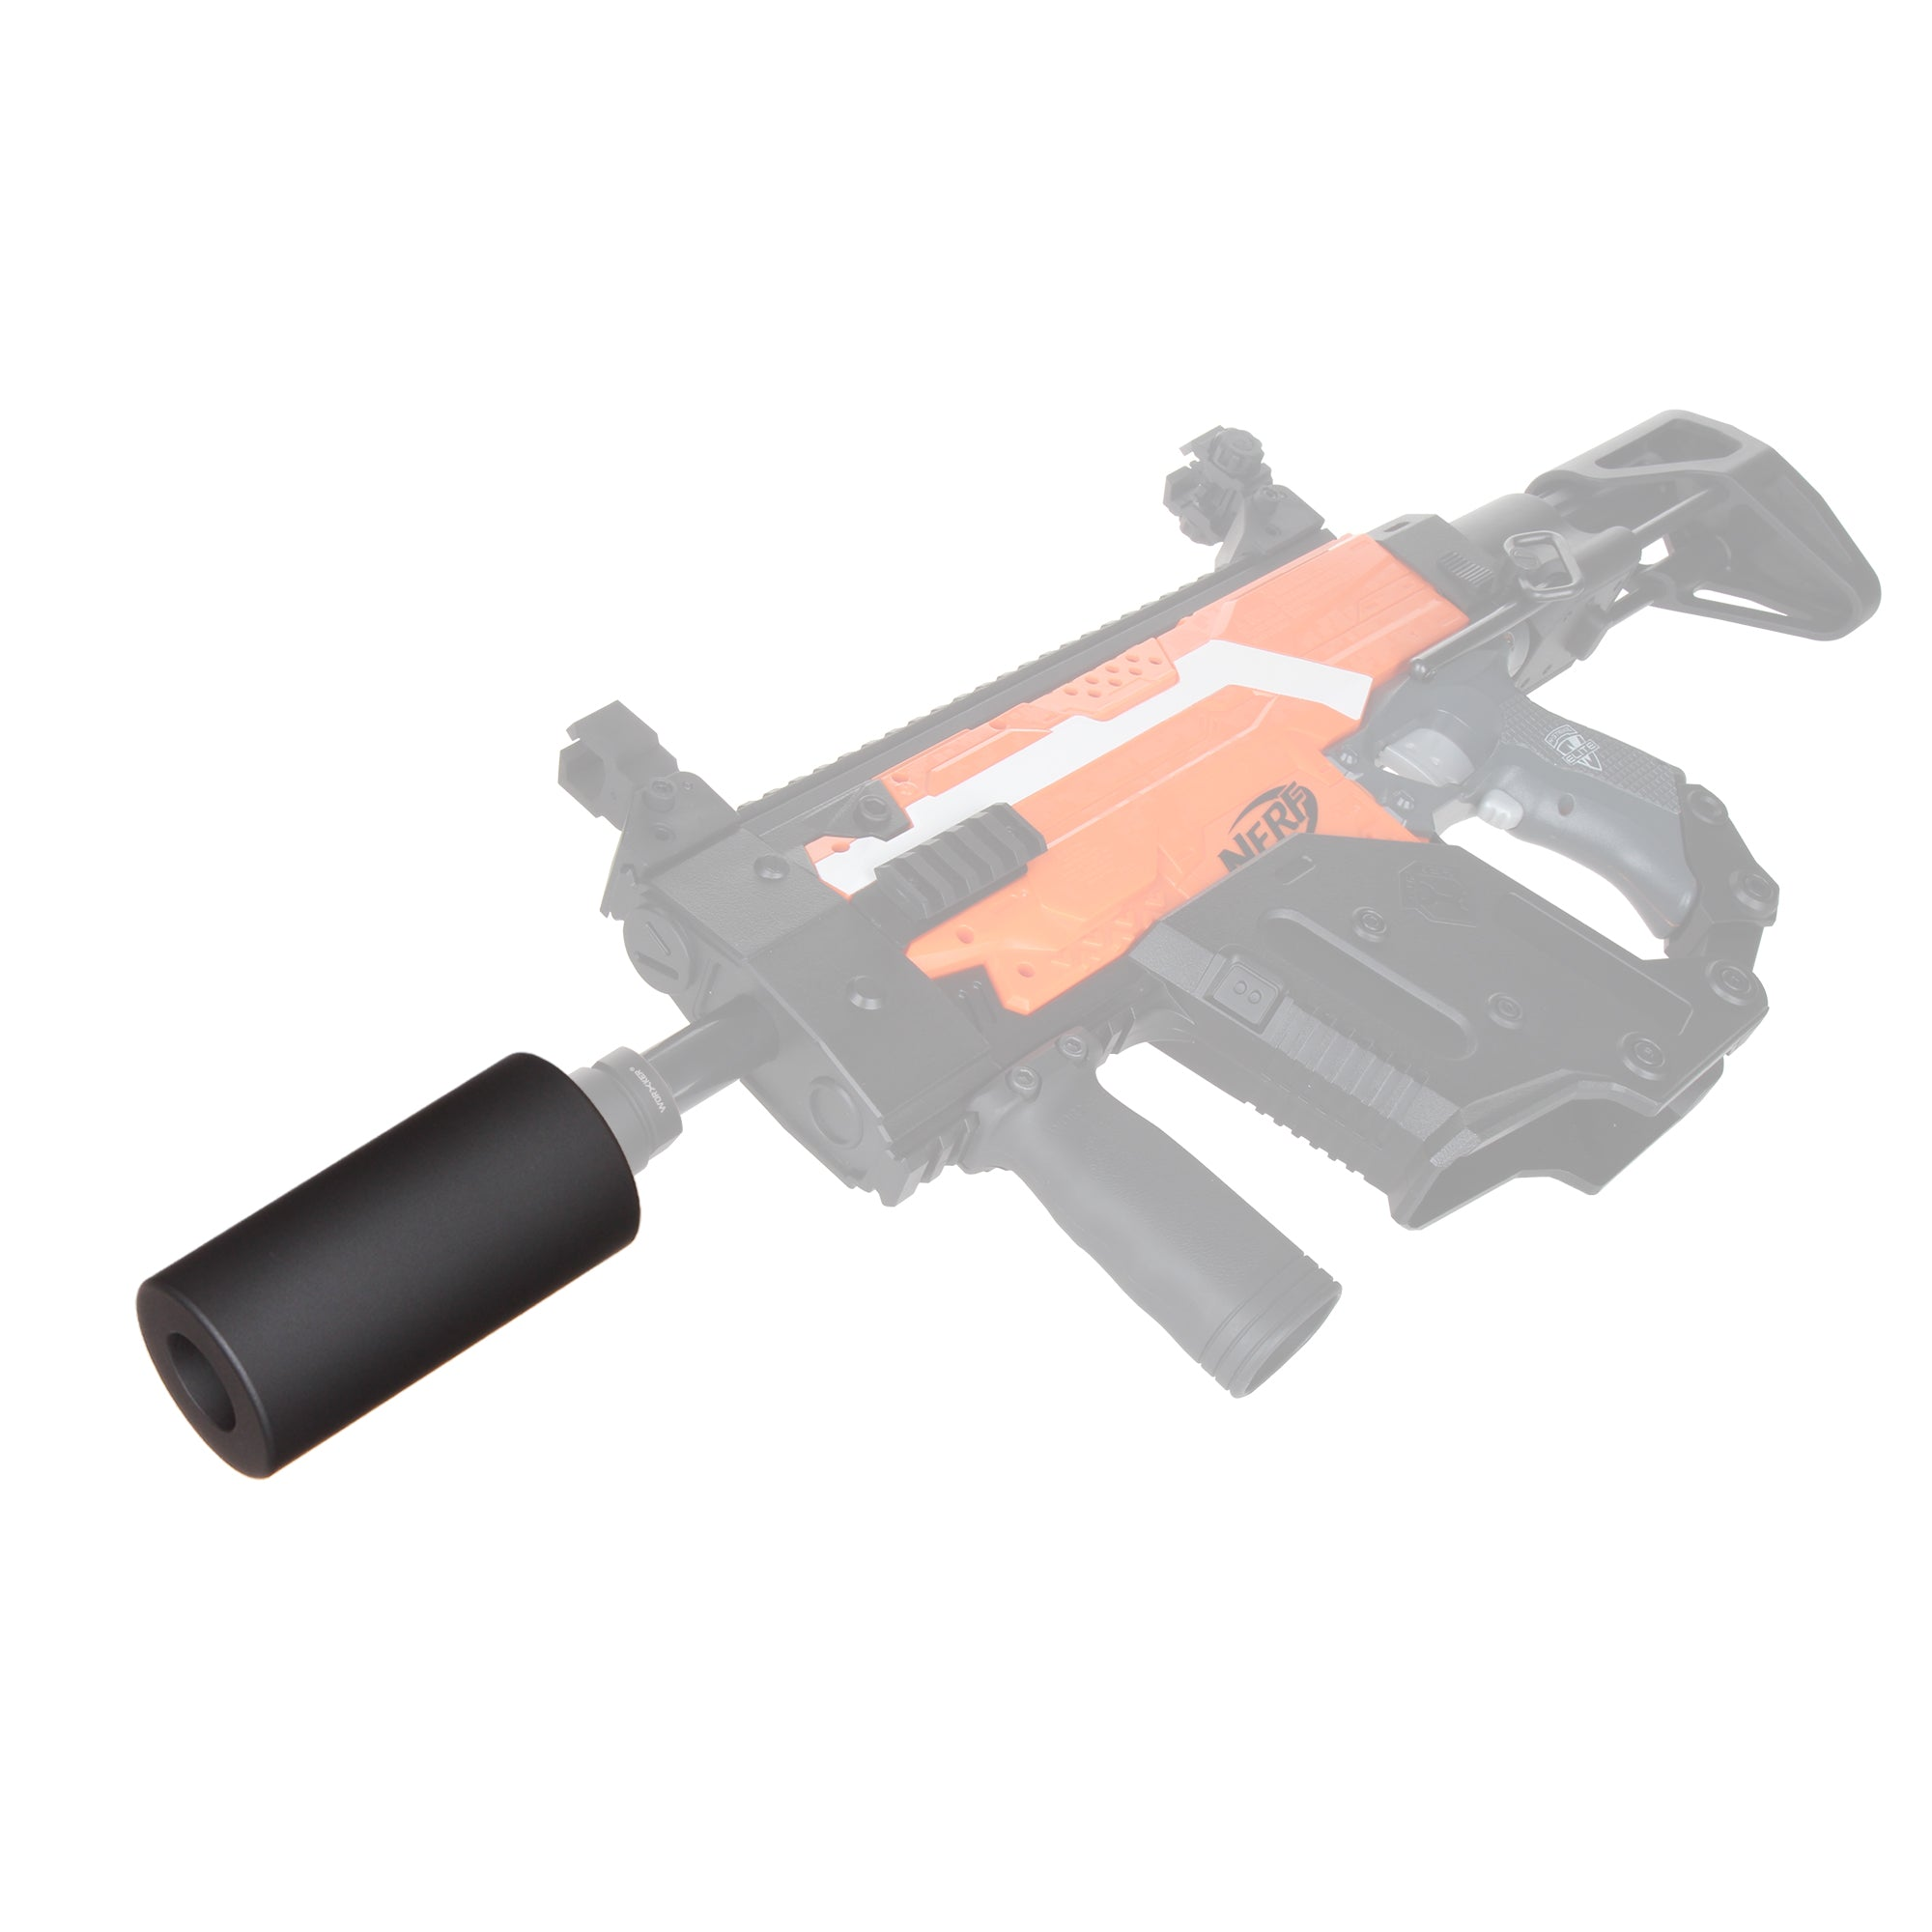 JGCWORKER Screw Thread Type ABS Plastic Smooth Short/Long Silencer for Nerf